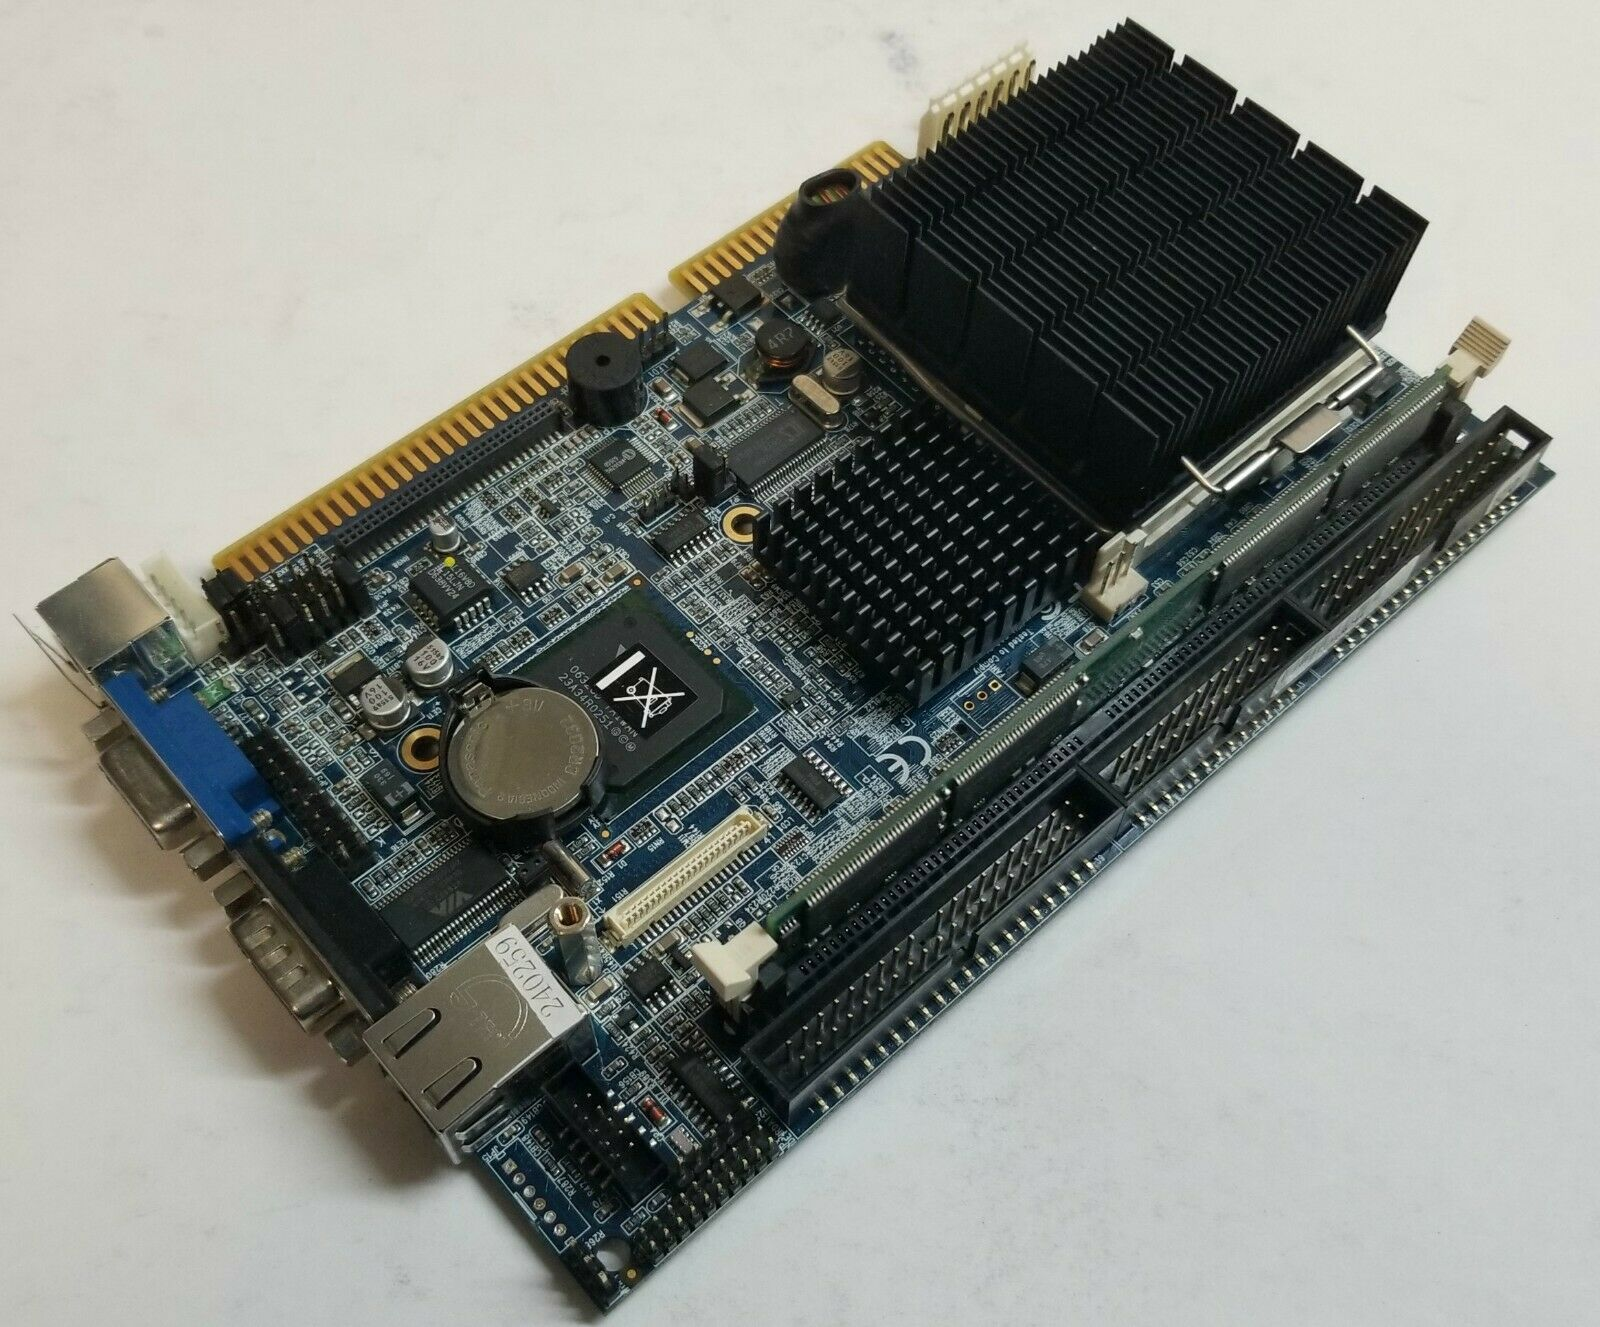 PredECH SYSTEM PROX1635-G1A SINGLE BOARD COMPUTER TESTED